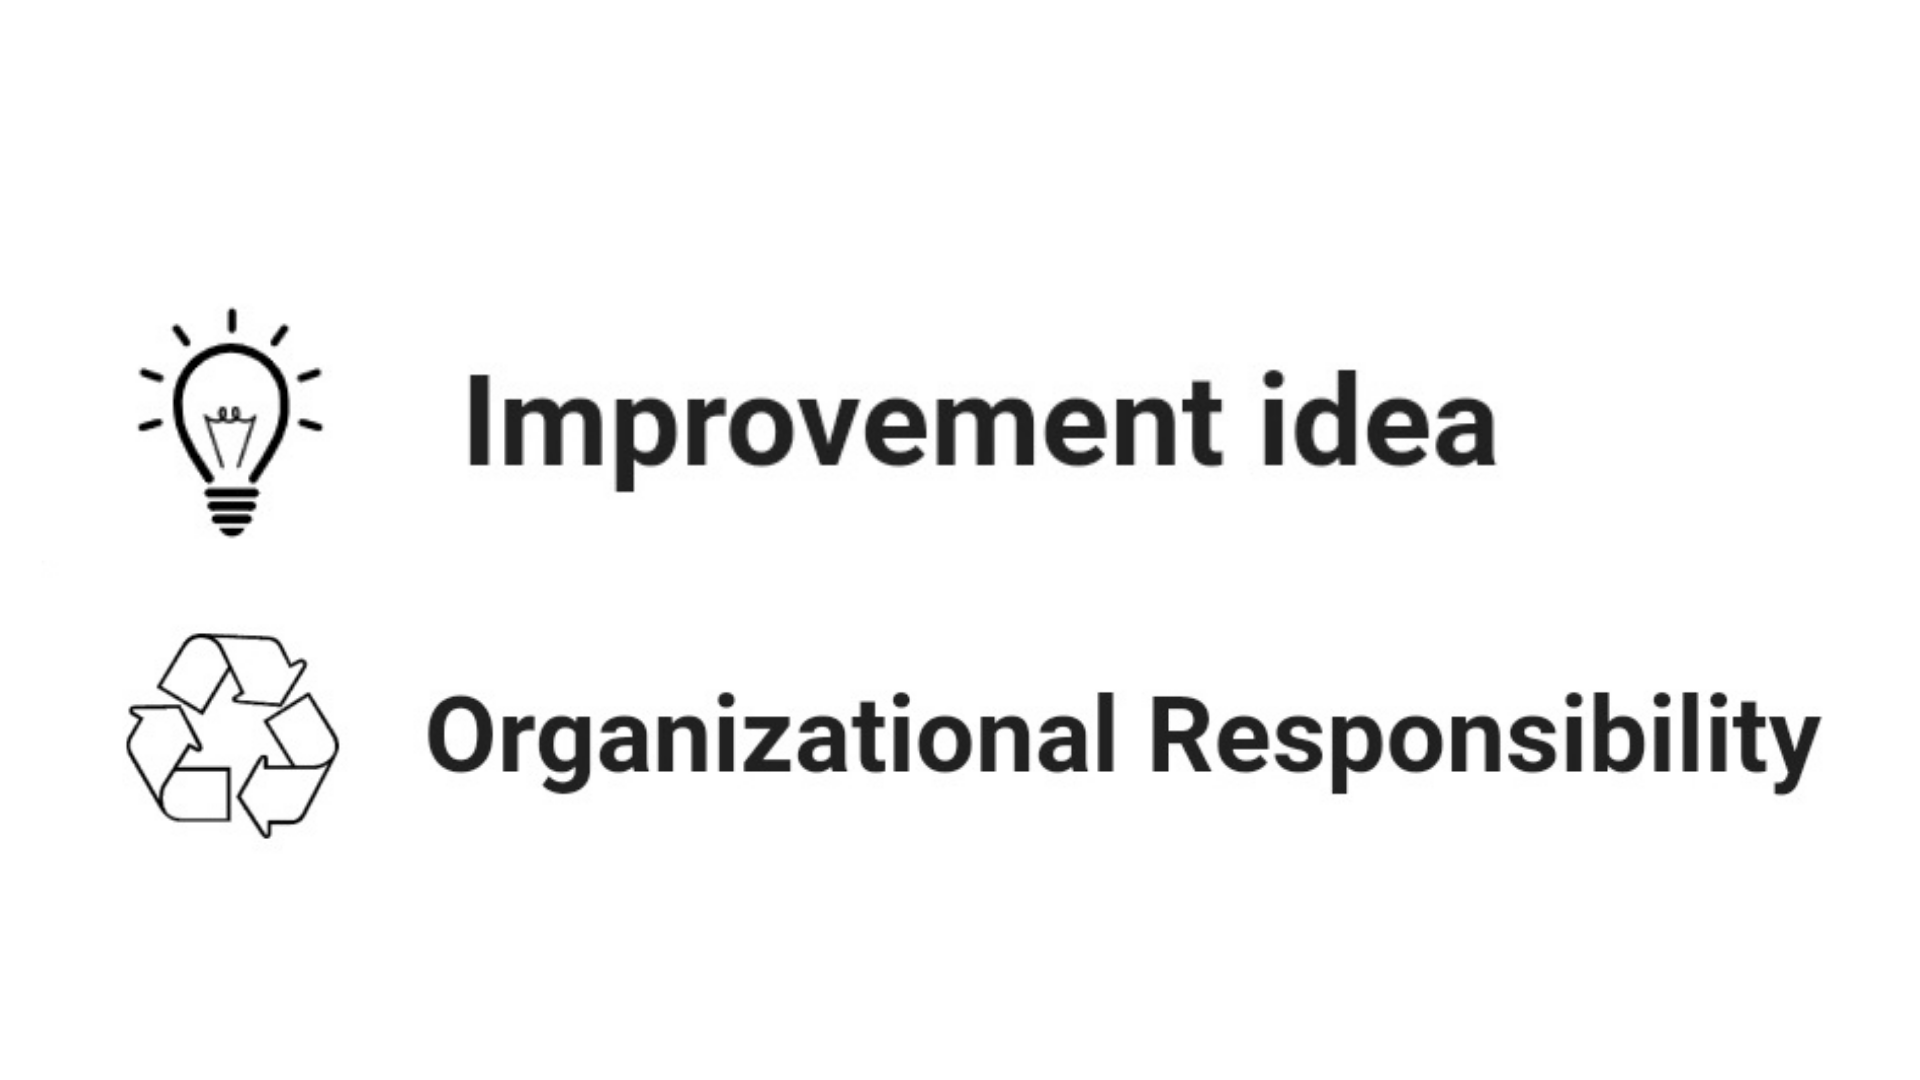 Improvement idea and Organizational responsibility